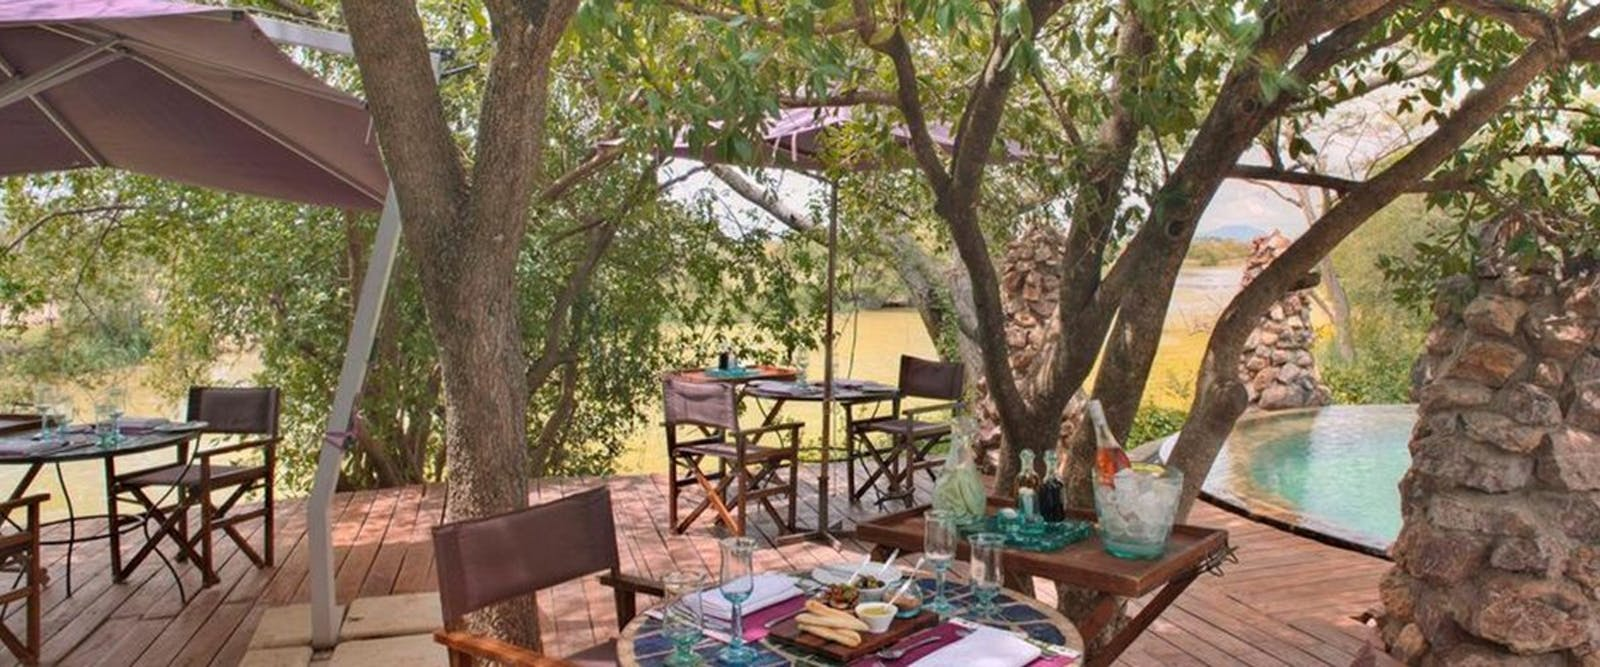 Outdoor dining area at &Beyond Grumeti Serengeti Tented Camp